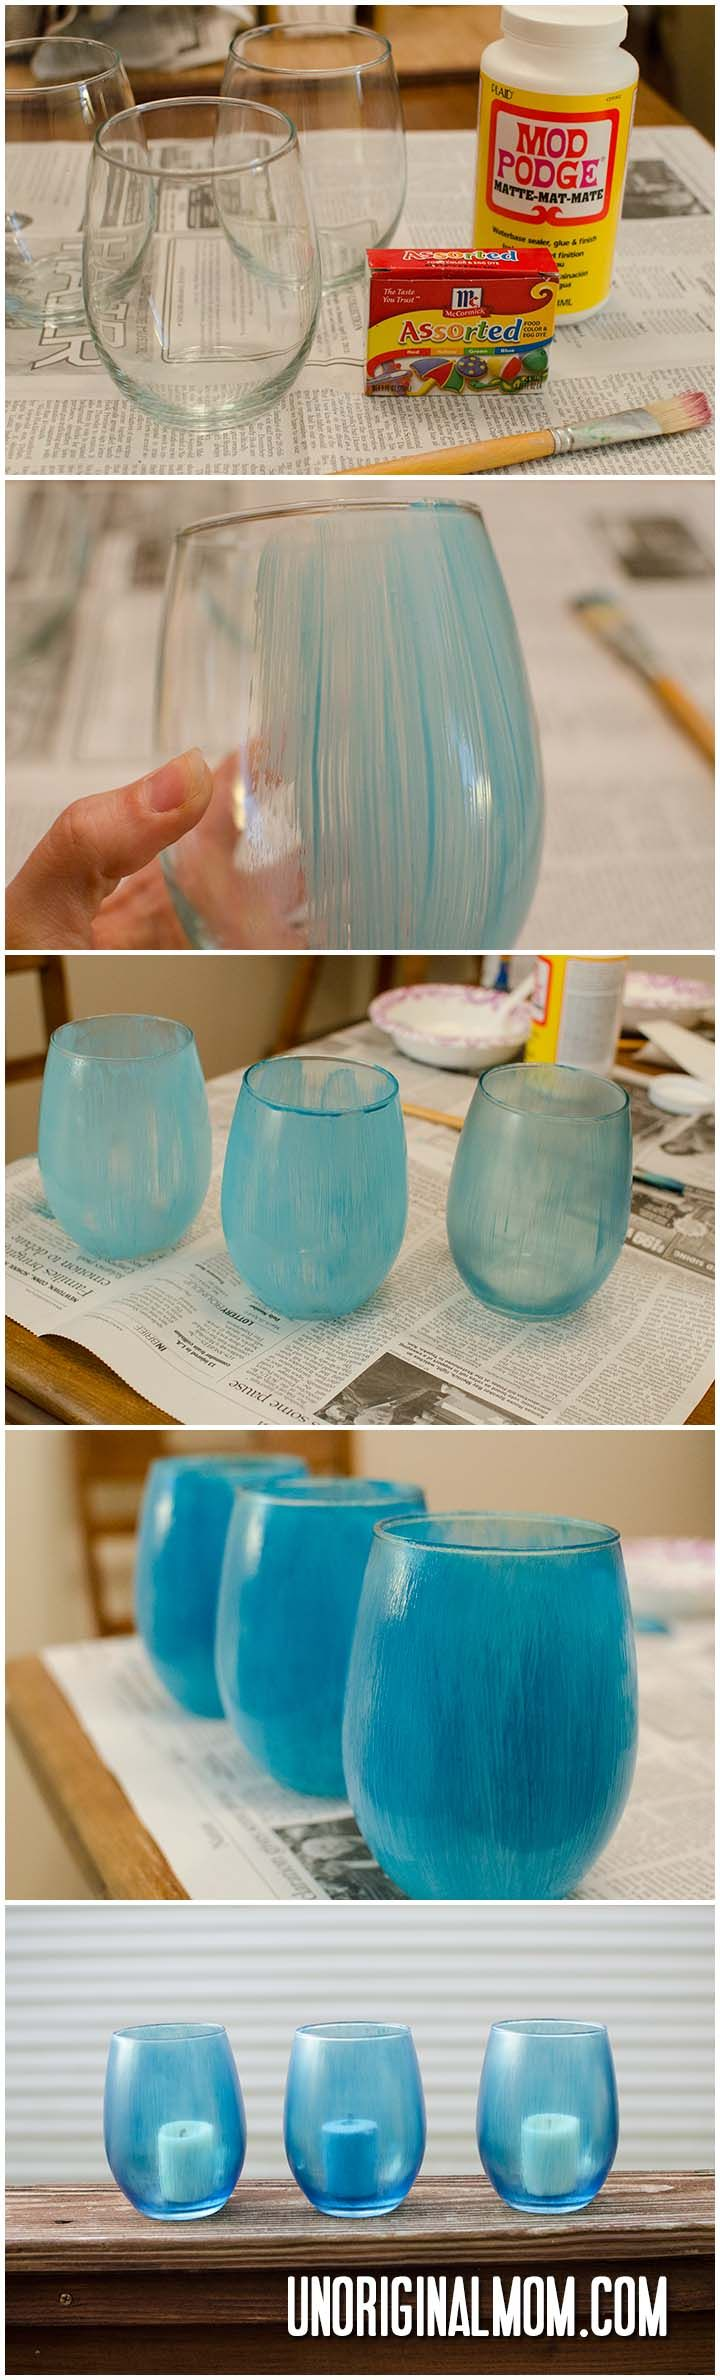 How to make painted glass using mod podge and food coloring.  So easy!  | unOriginalMom.com